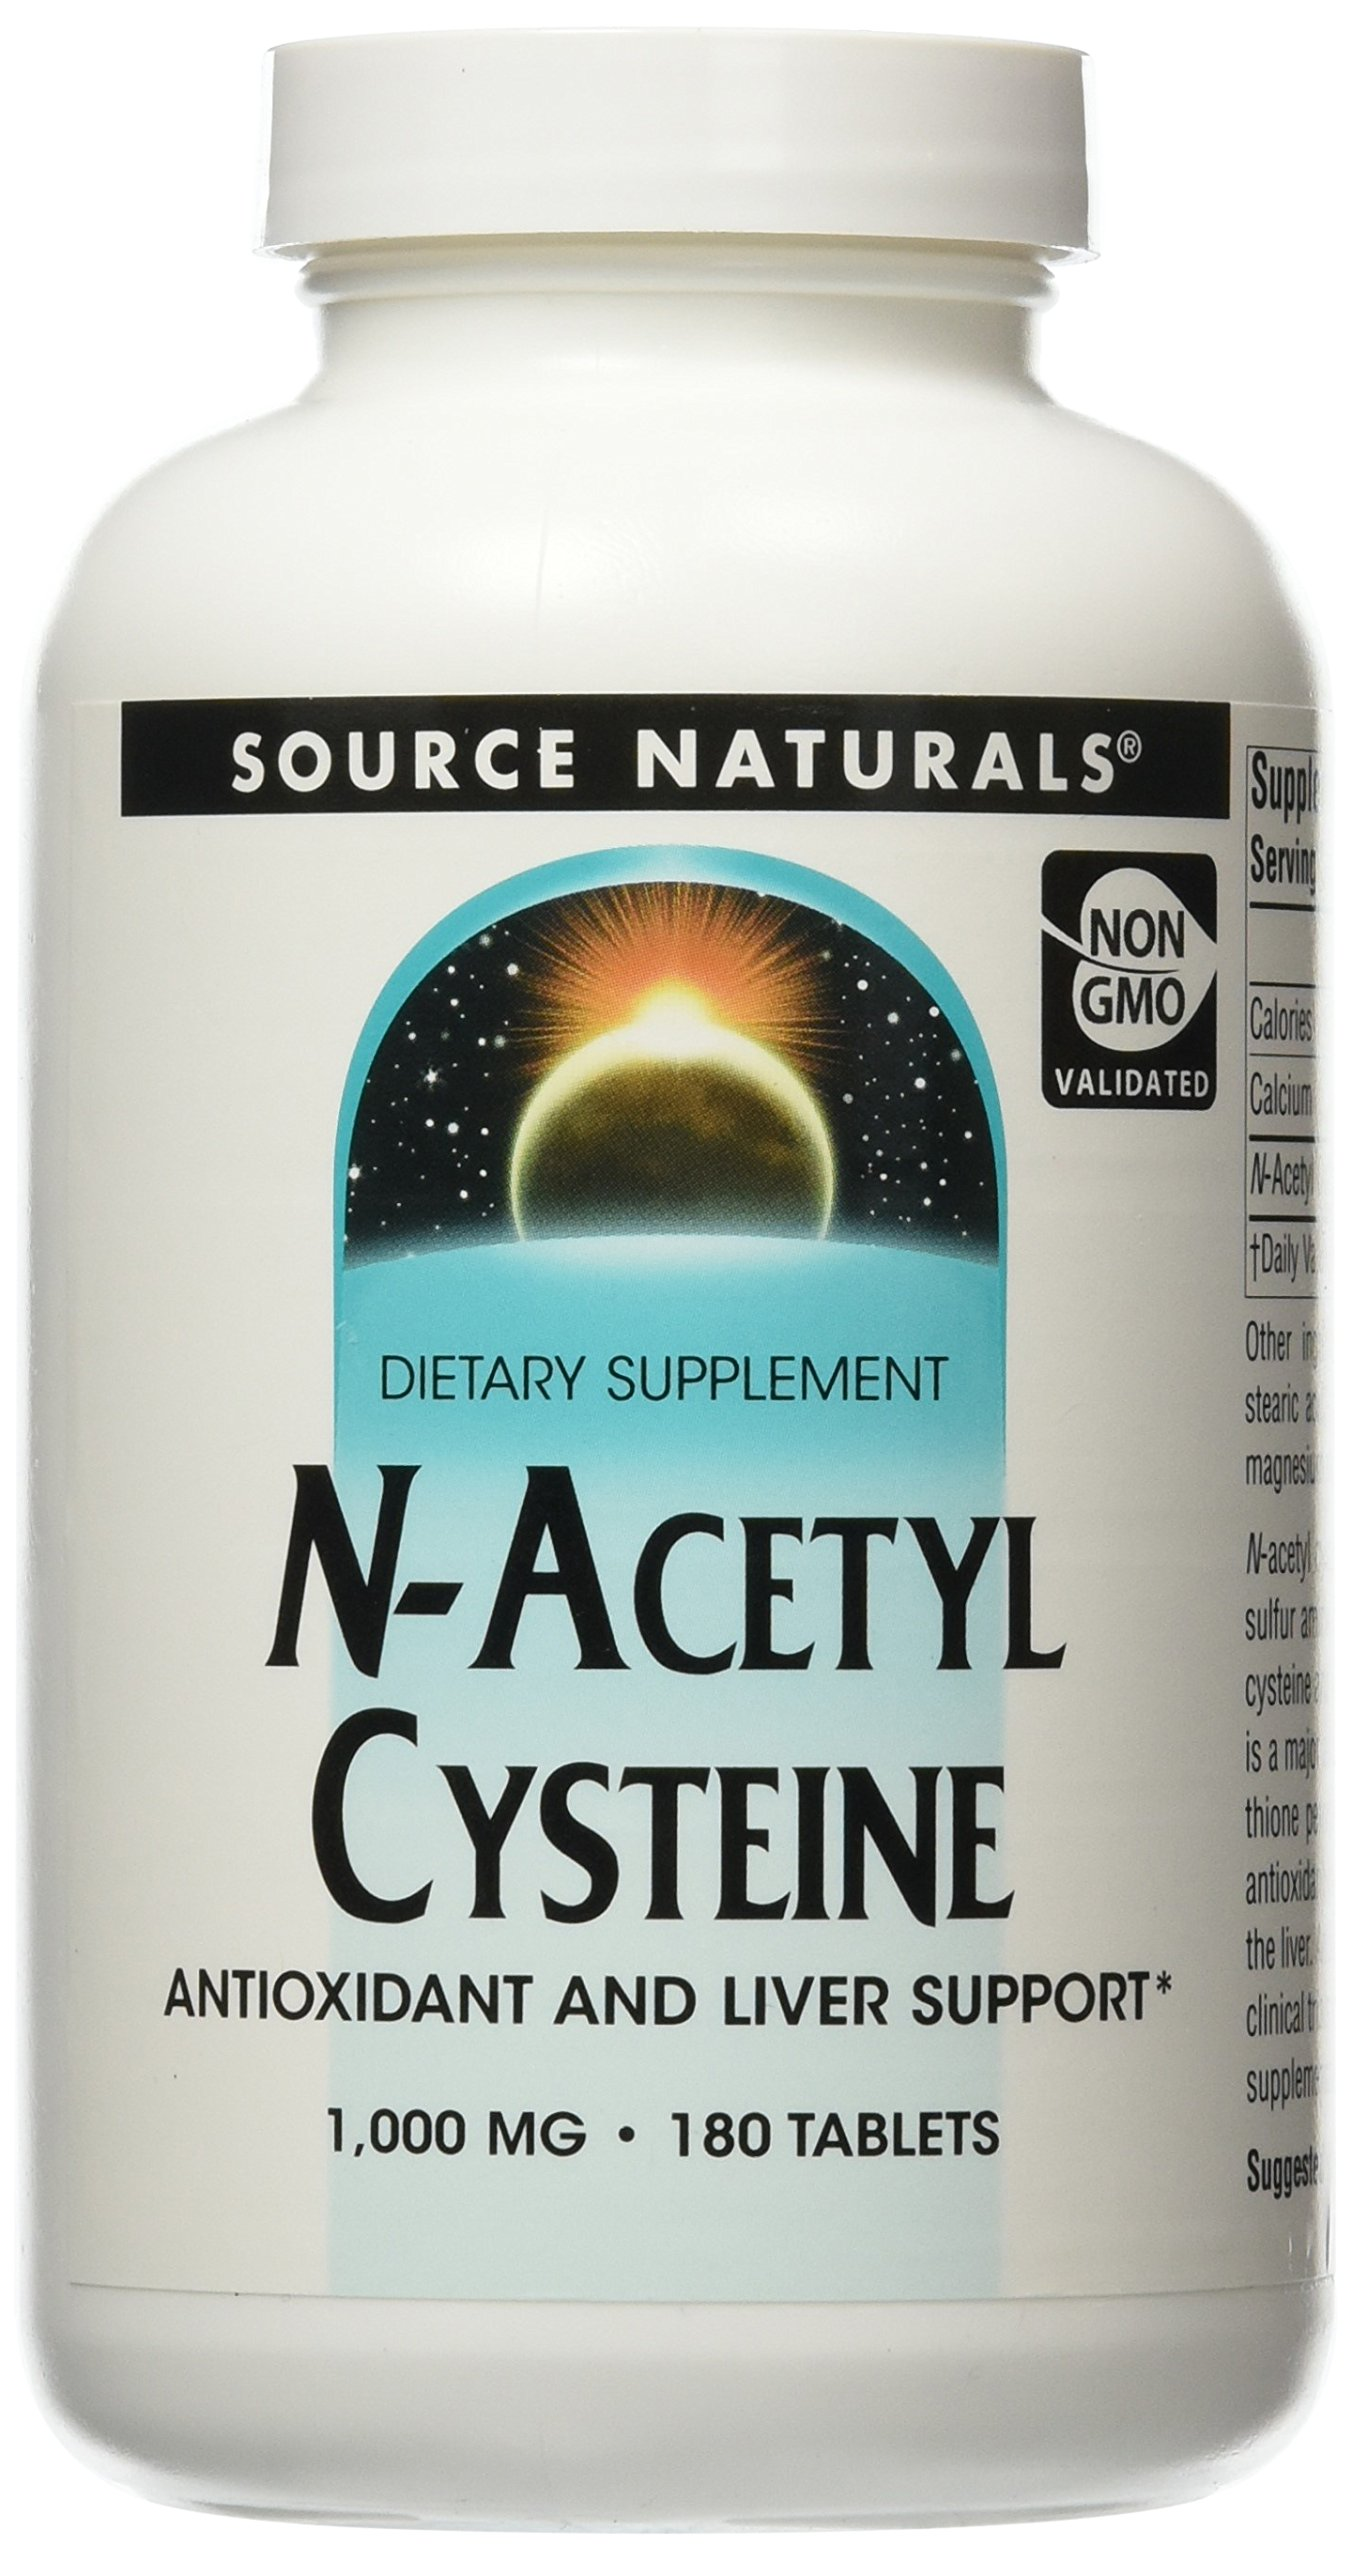 SOURCE NATURALS N-Acetyl Cysteine 1000 Mg Tablet, 180 Count